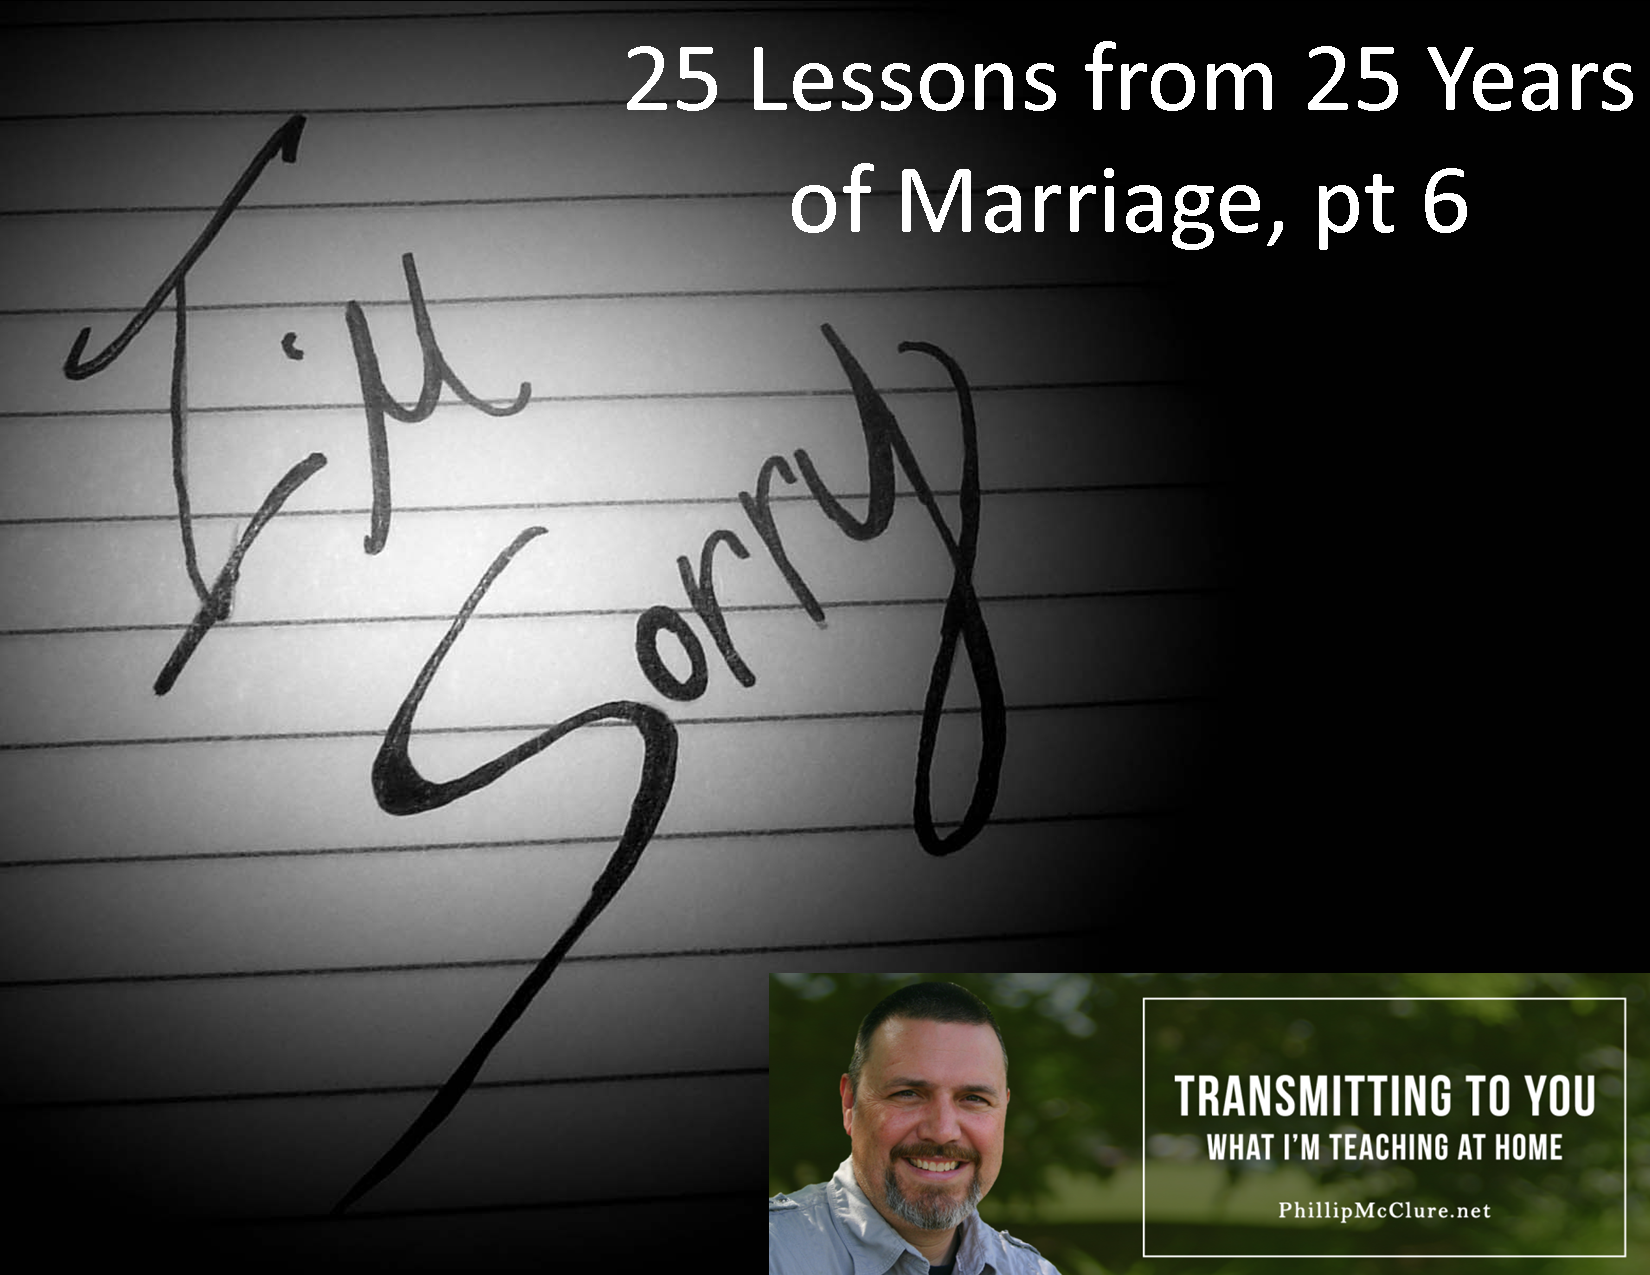 image for 25 lessons part 6 - 7.1.15